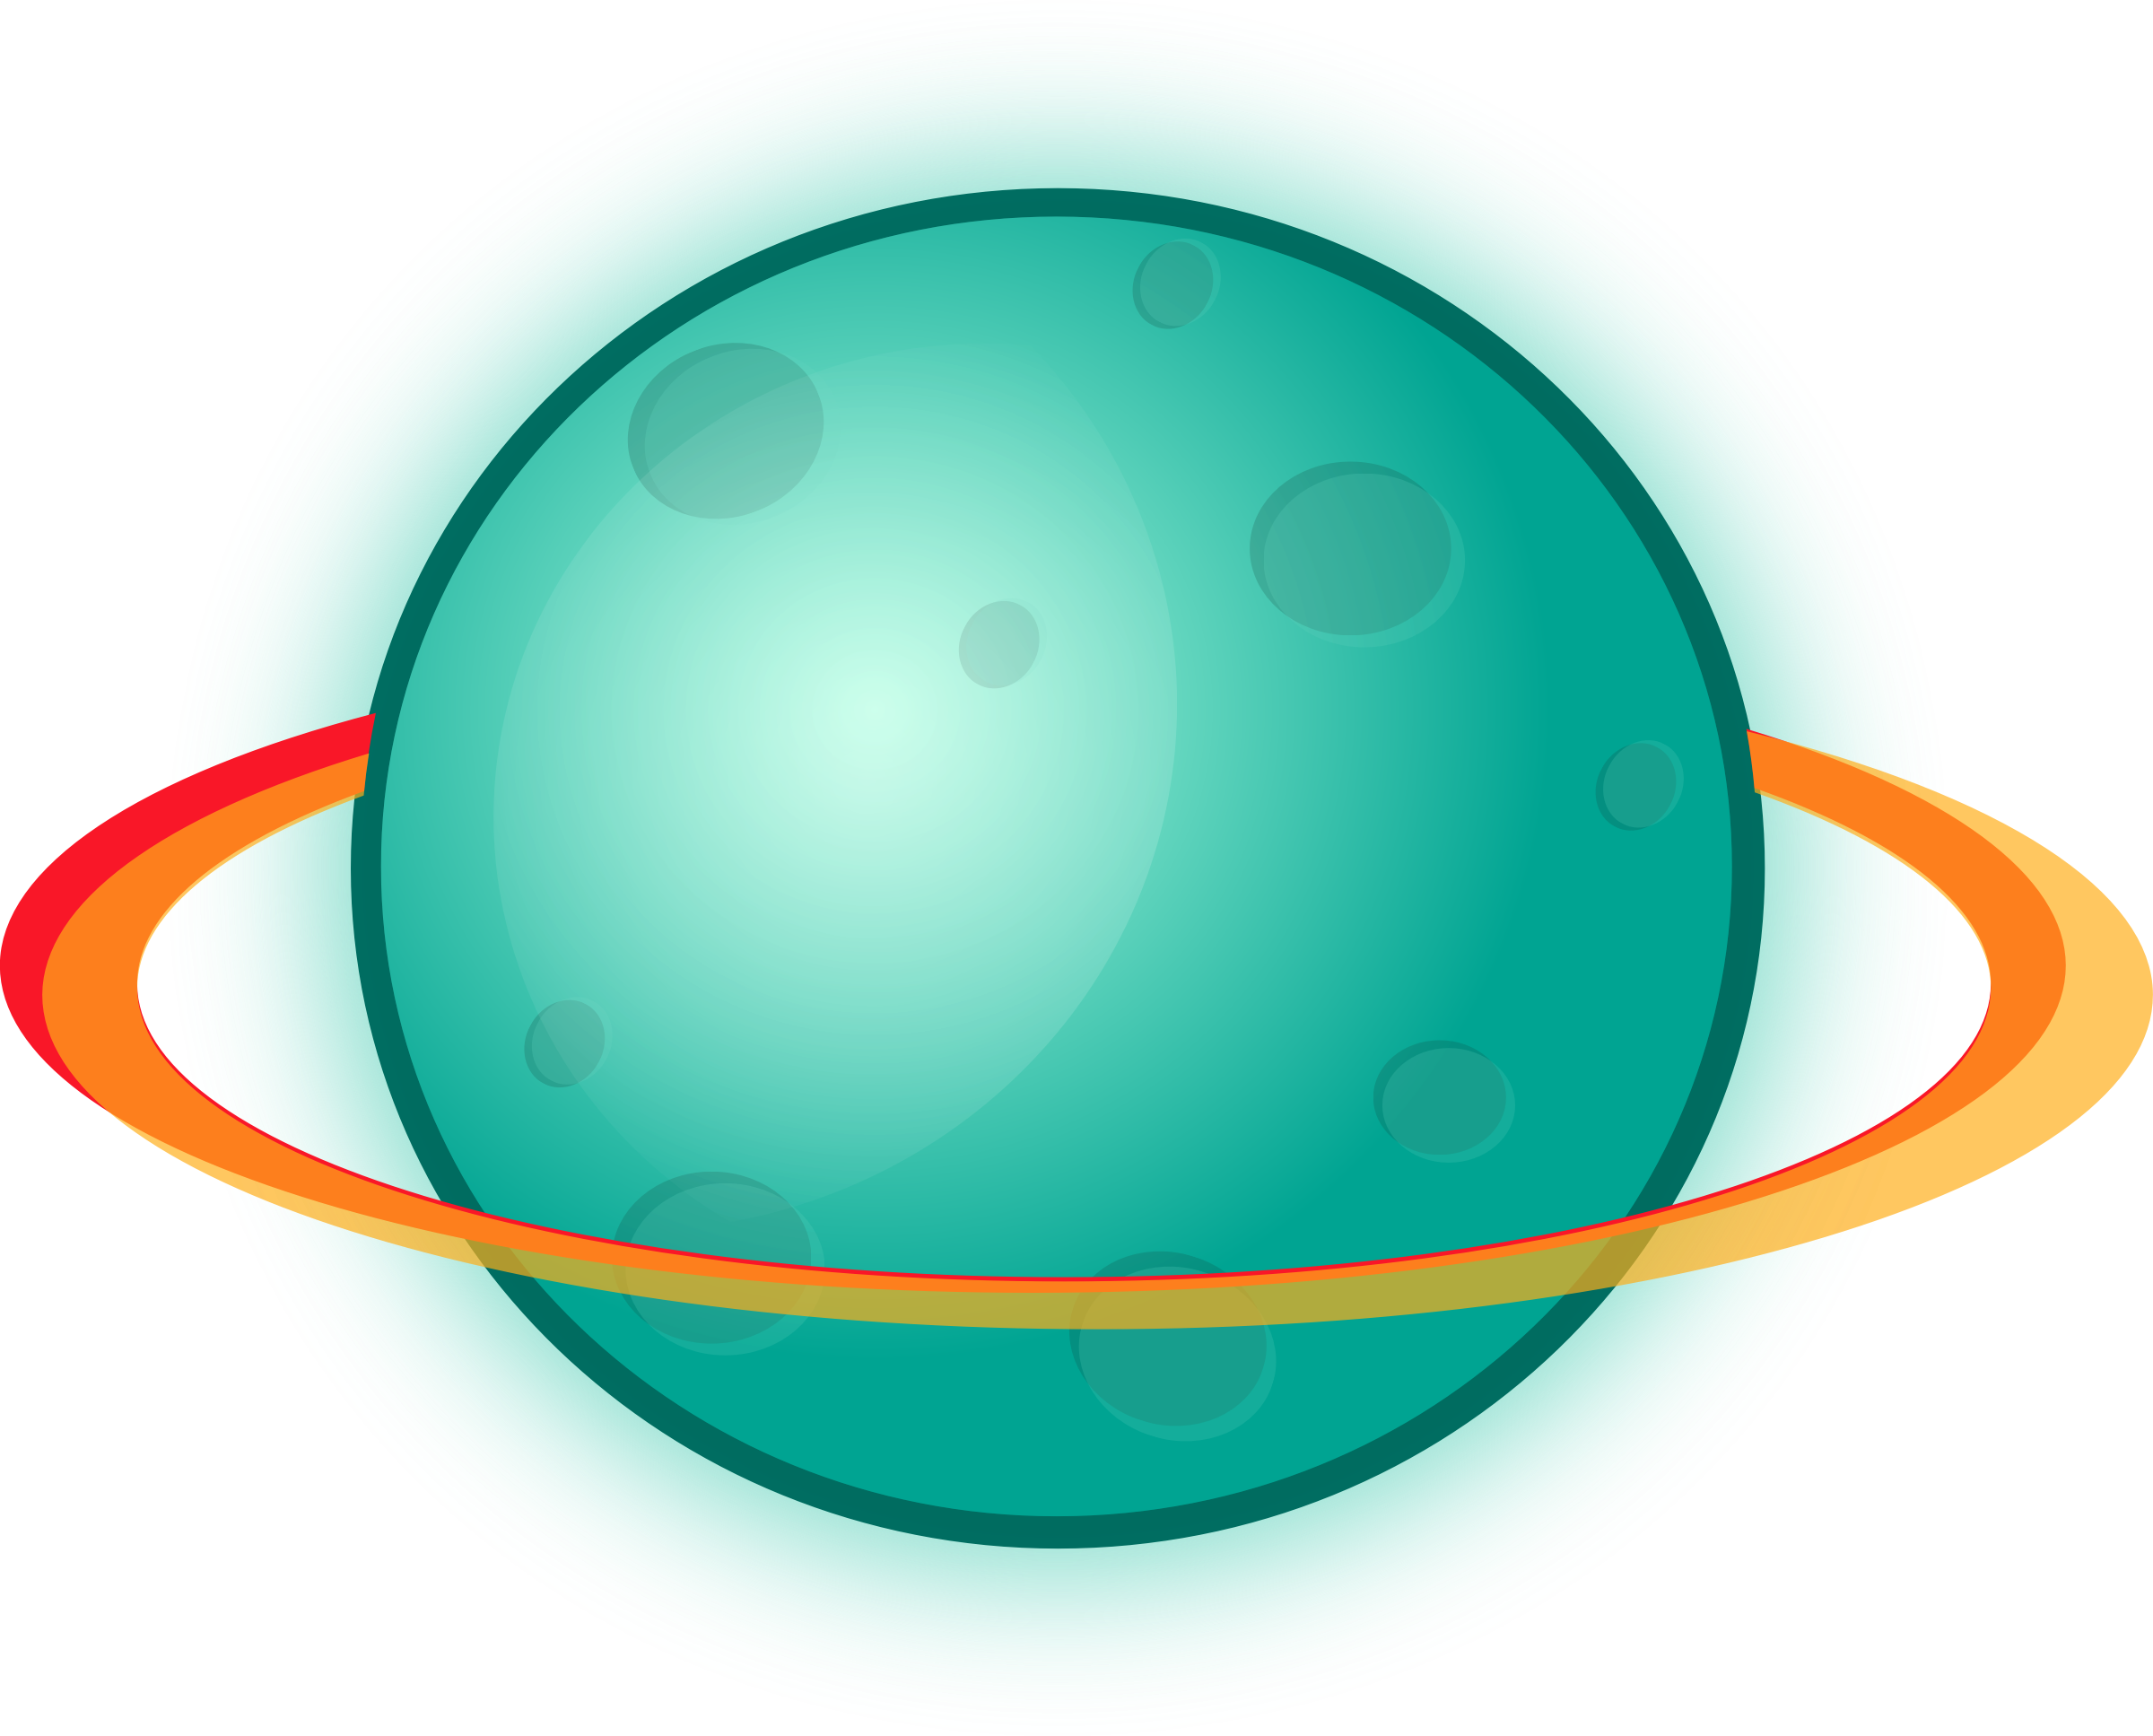 Planet svg colourful. With rings by magnesus